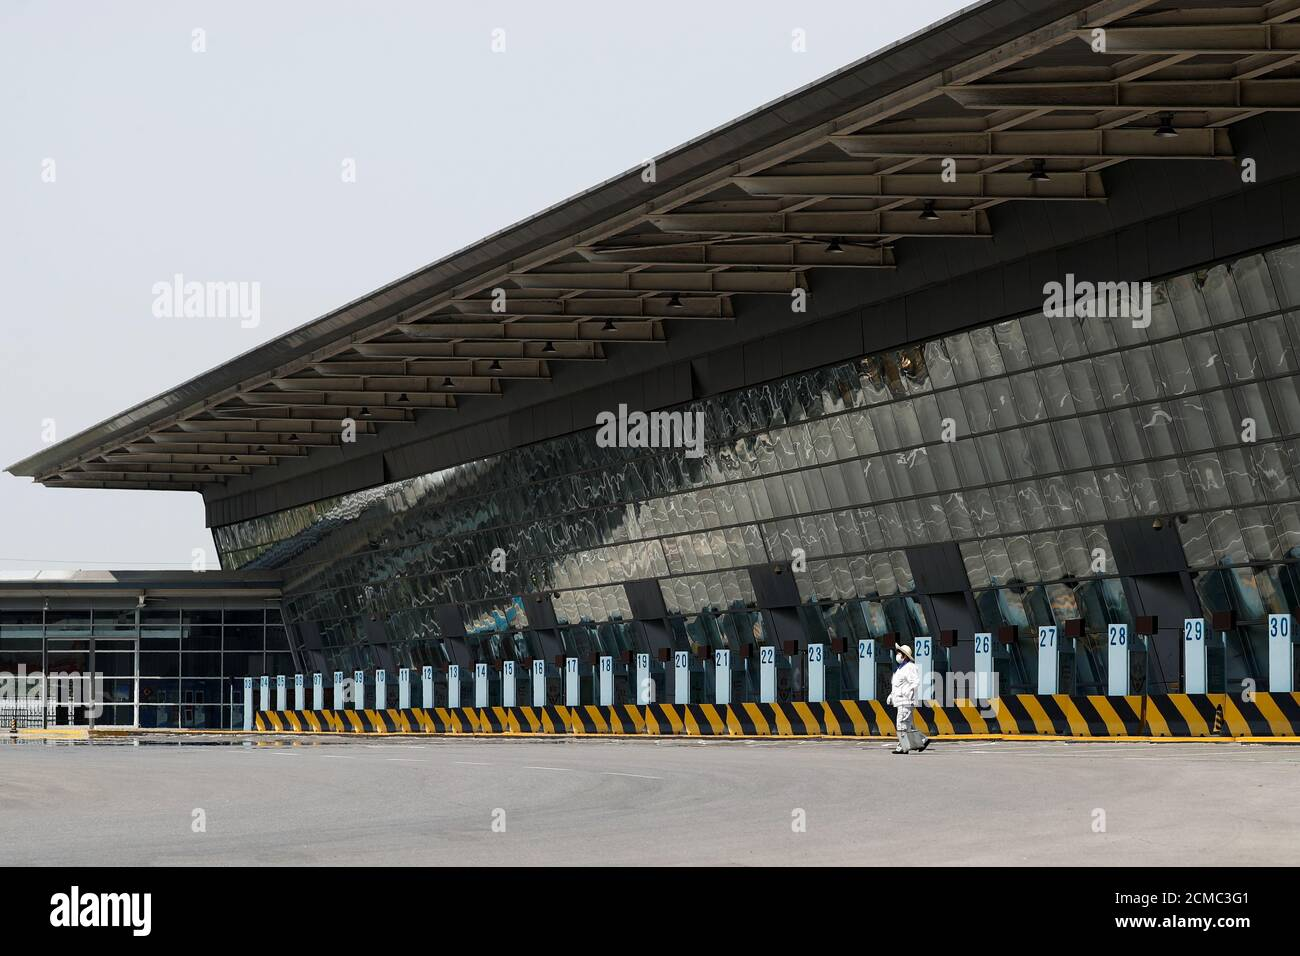 Bus Bays High Resolution Stock Photography And Images Alamy